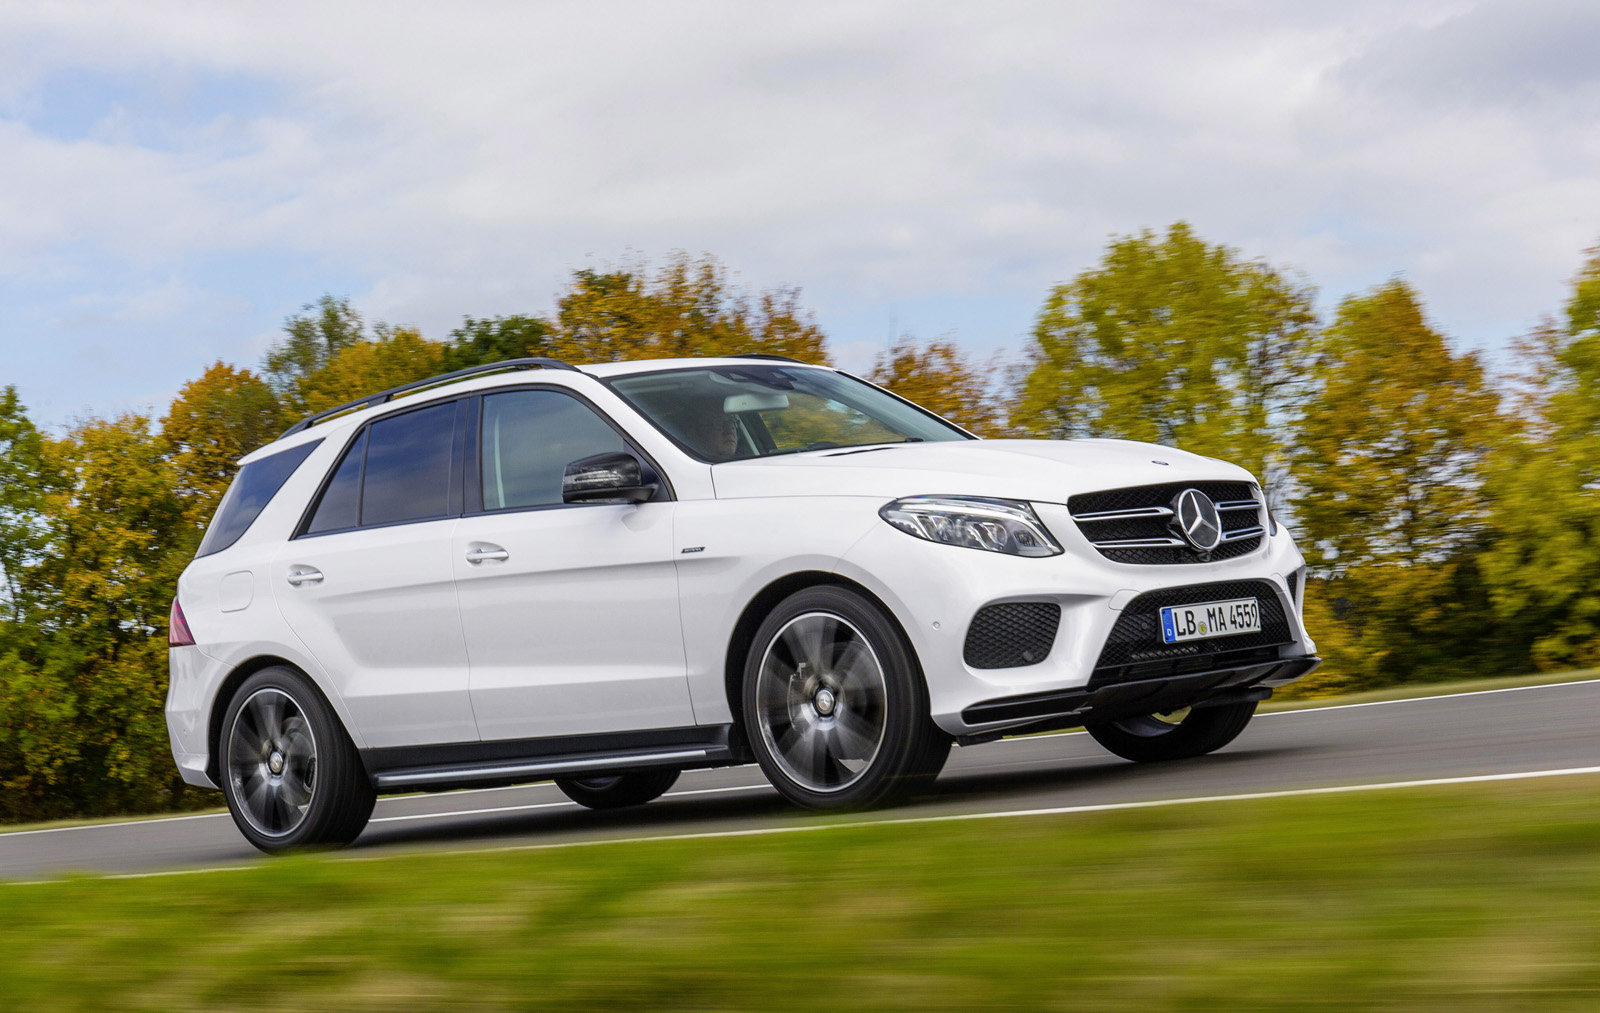 2016 mercedes benz gle 450 amg 4matic suv makes debut